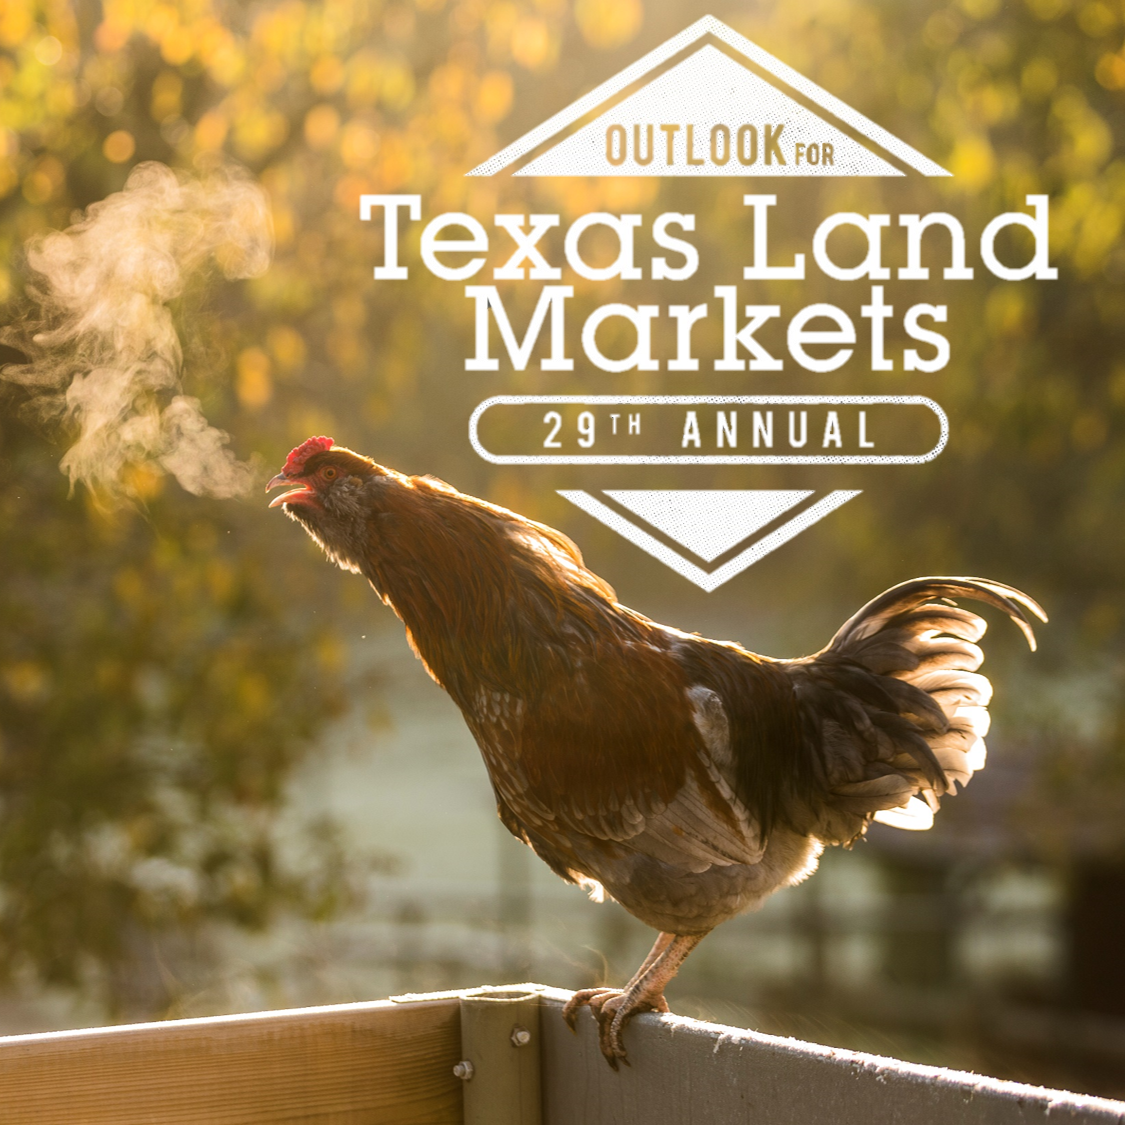 Chicken crowing with Texas Land Markets logo